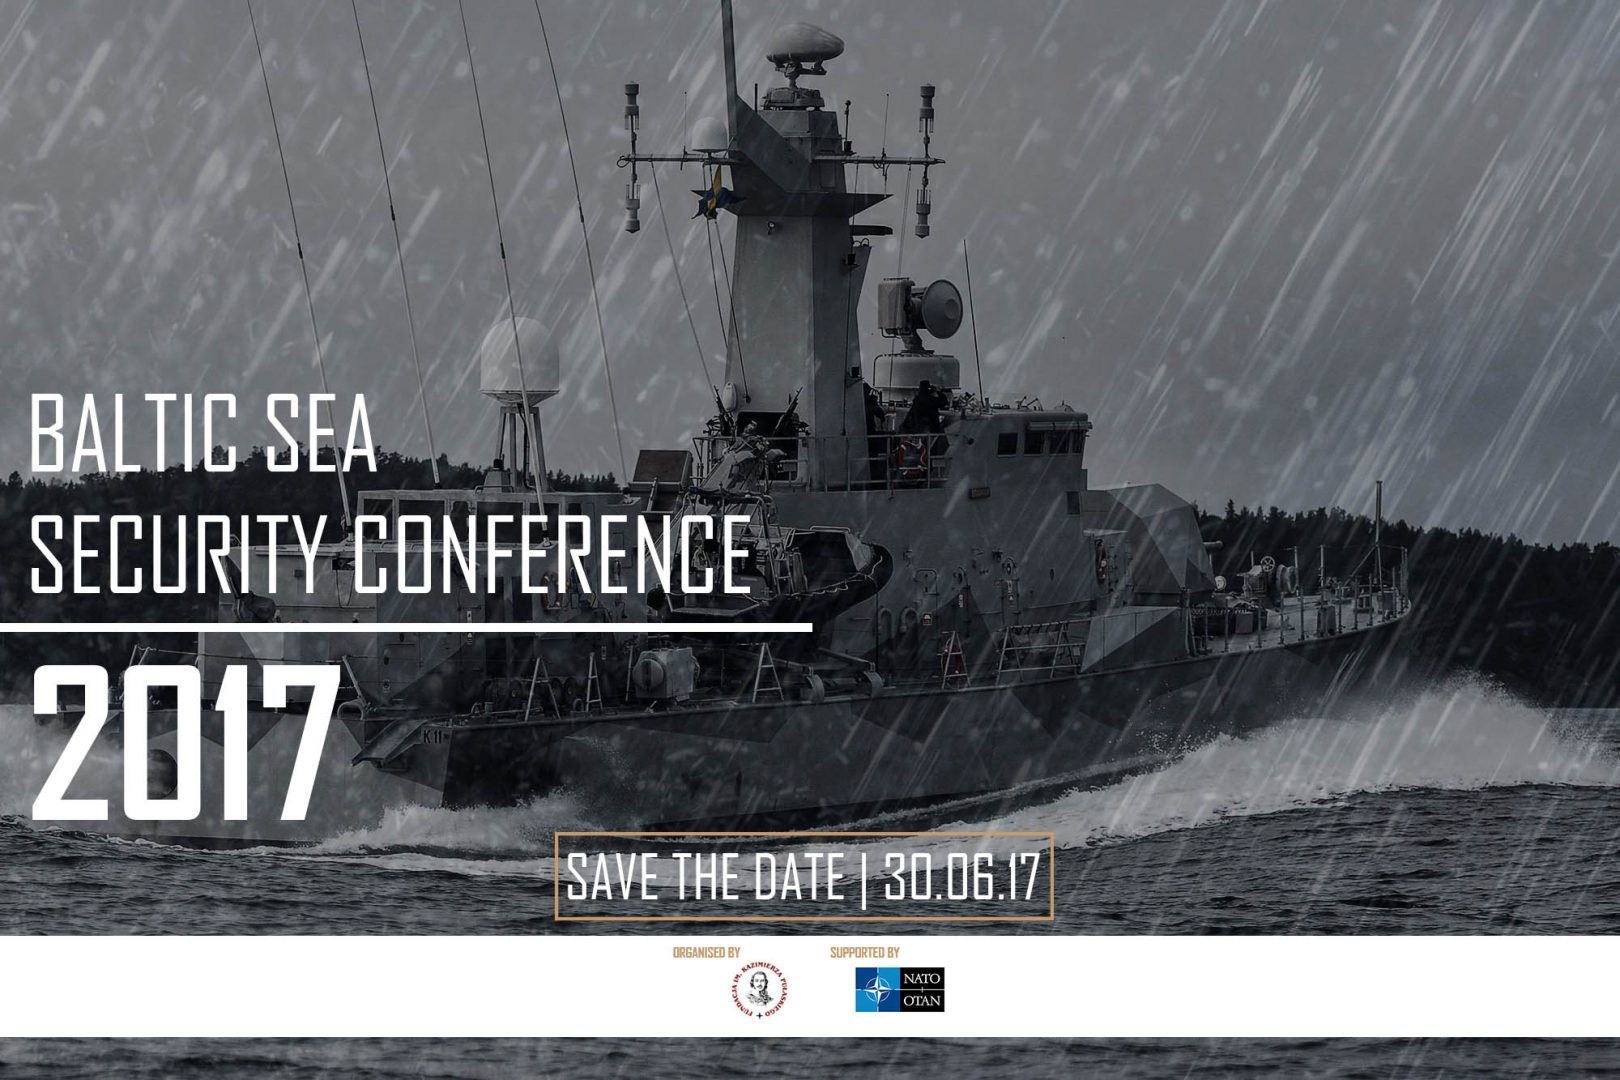 SAVE THE DATE – Baltic Sea Security Conference 2017